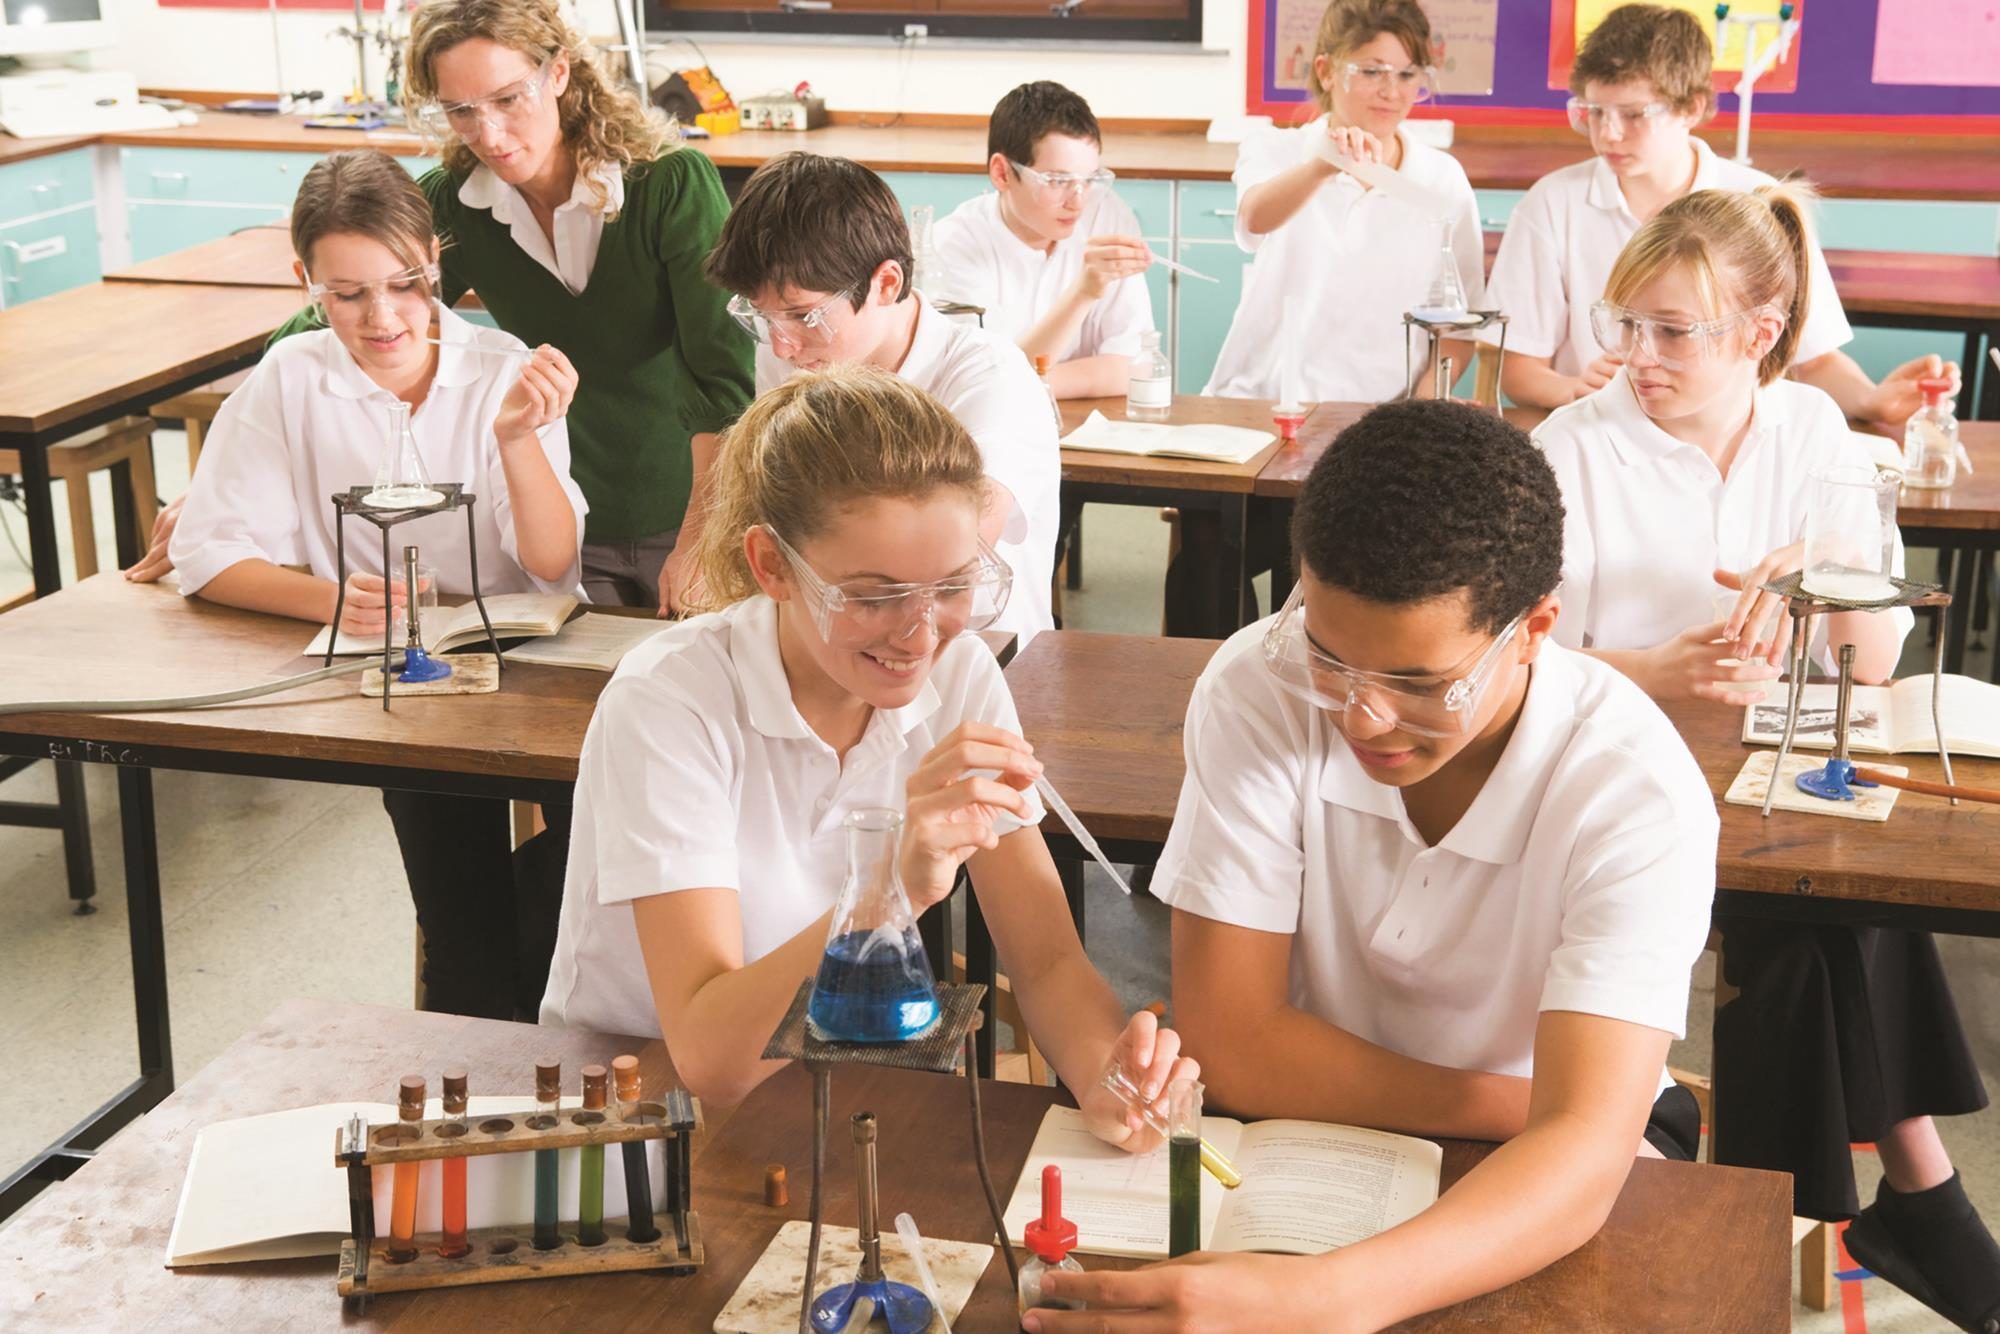 Laboratory skills | CPD | Education in Chemistry